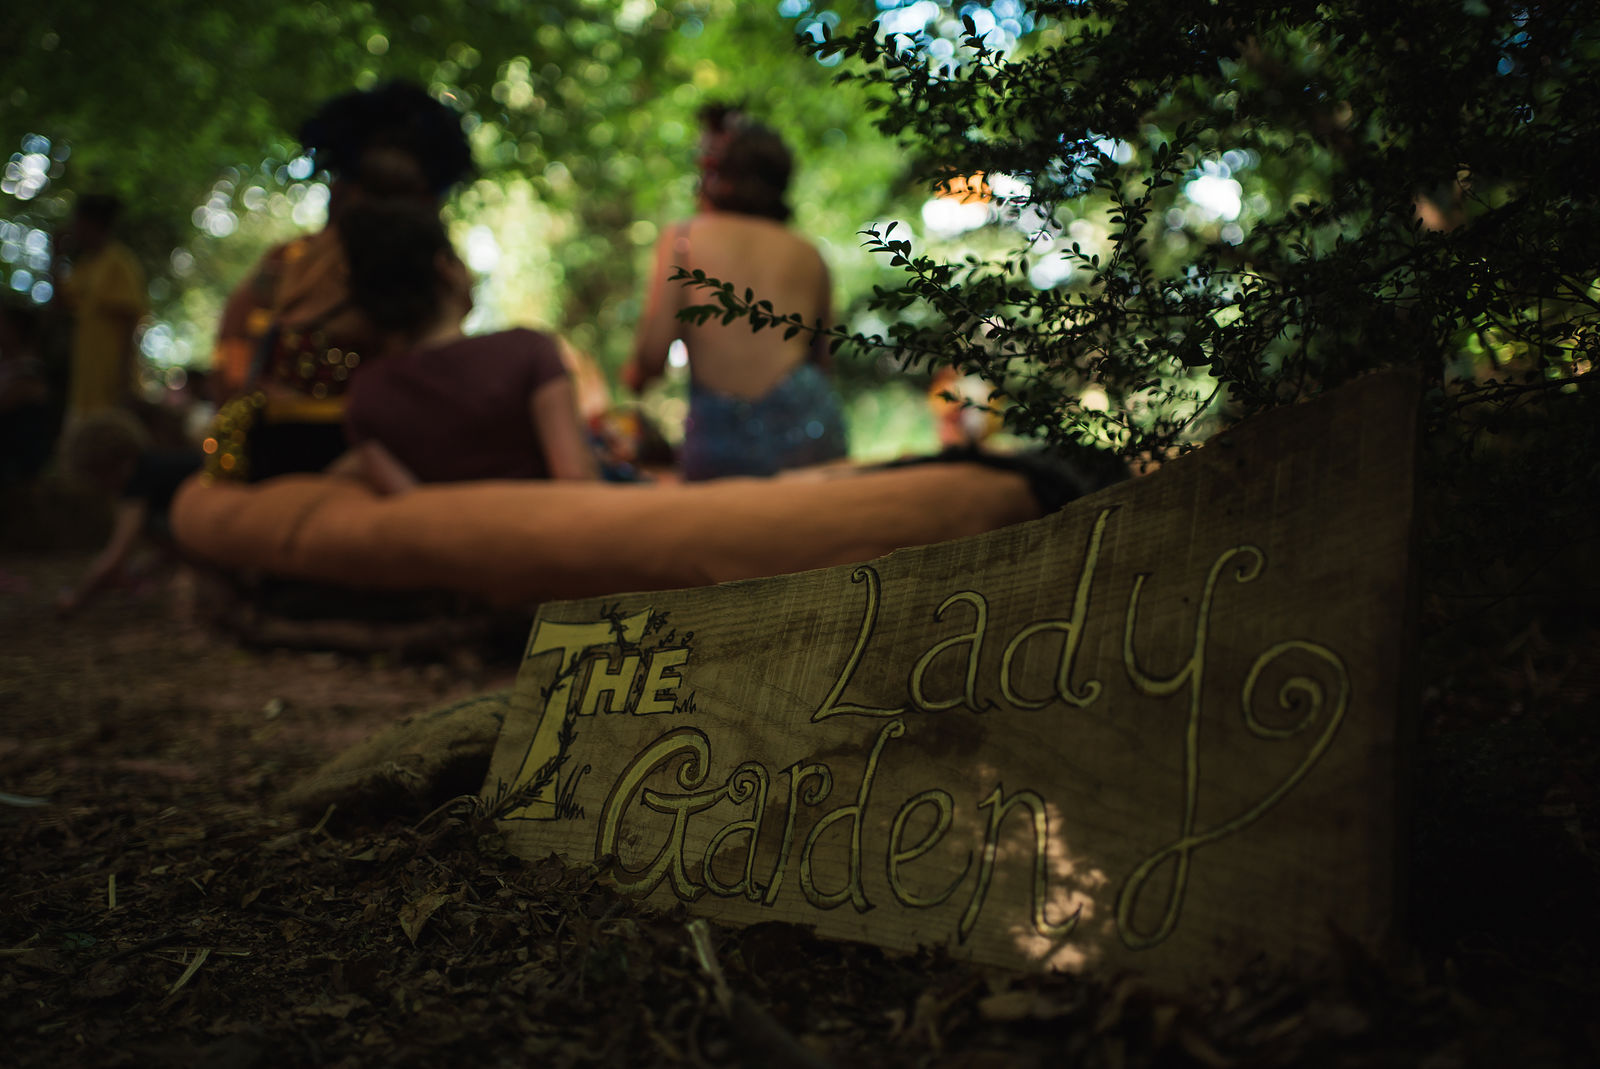 Shambala Festival | Gallery | The Lady Garden